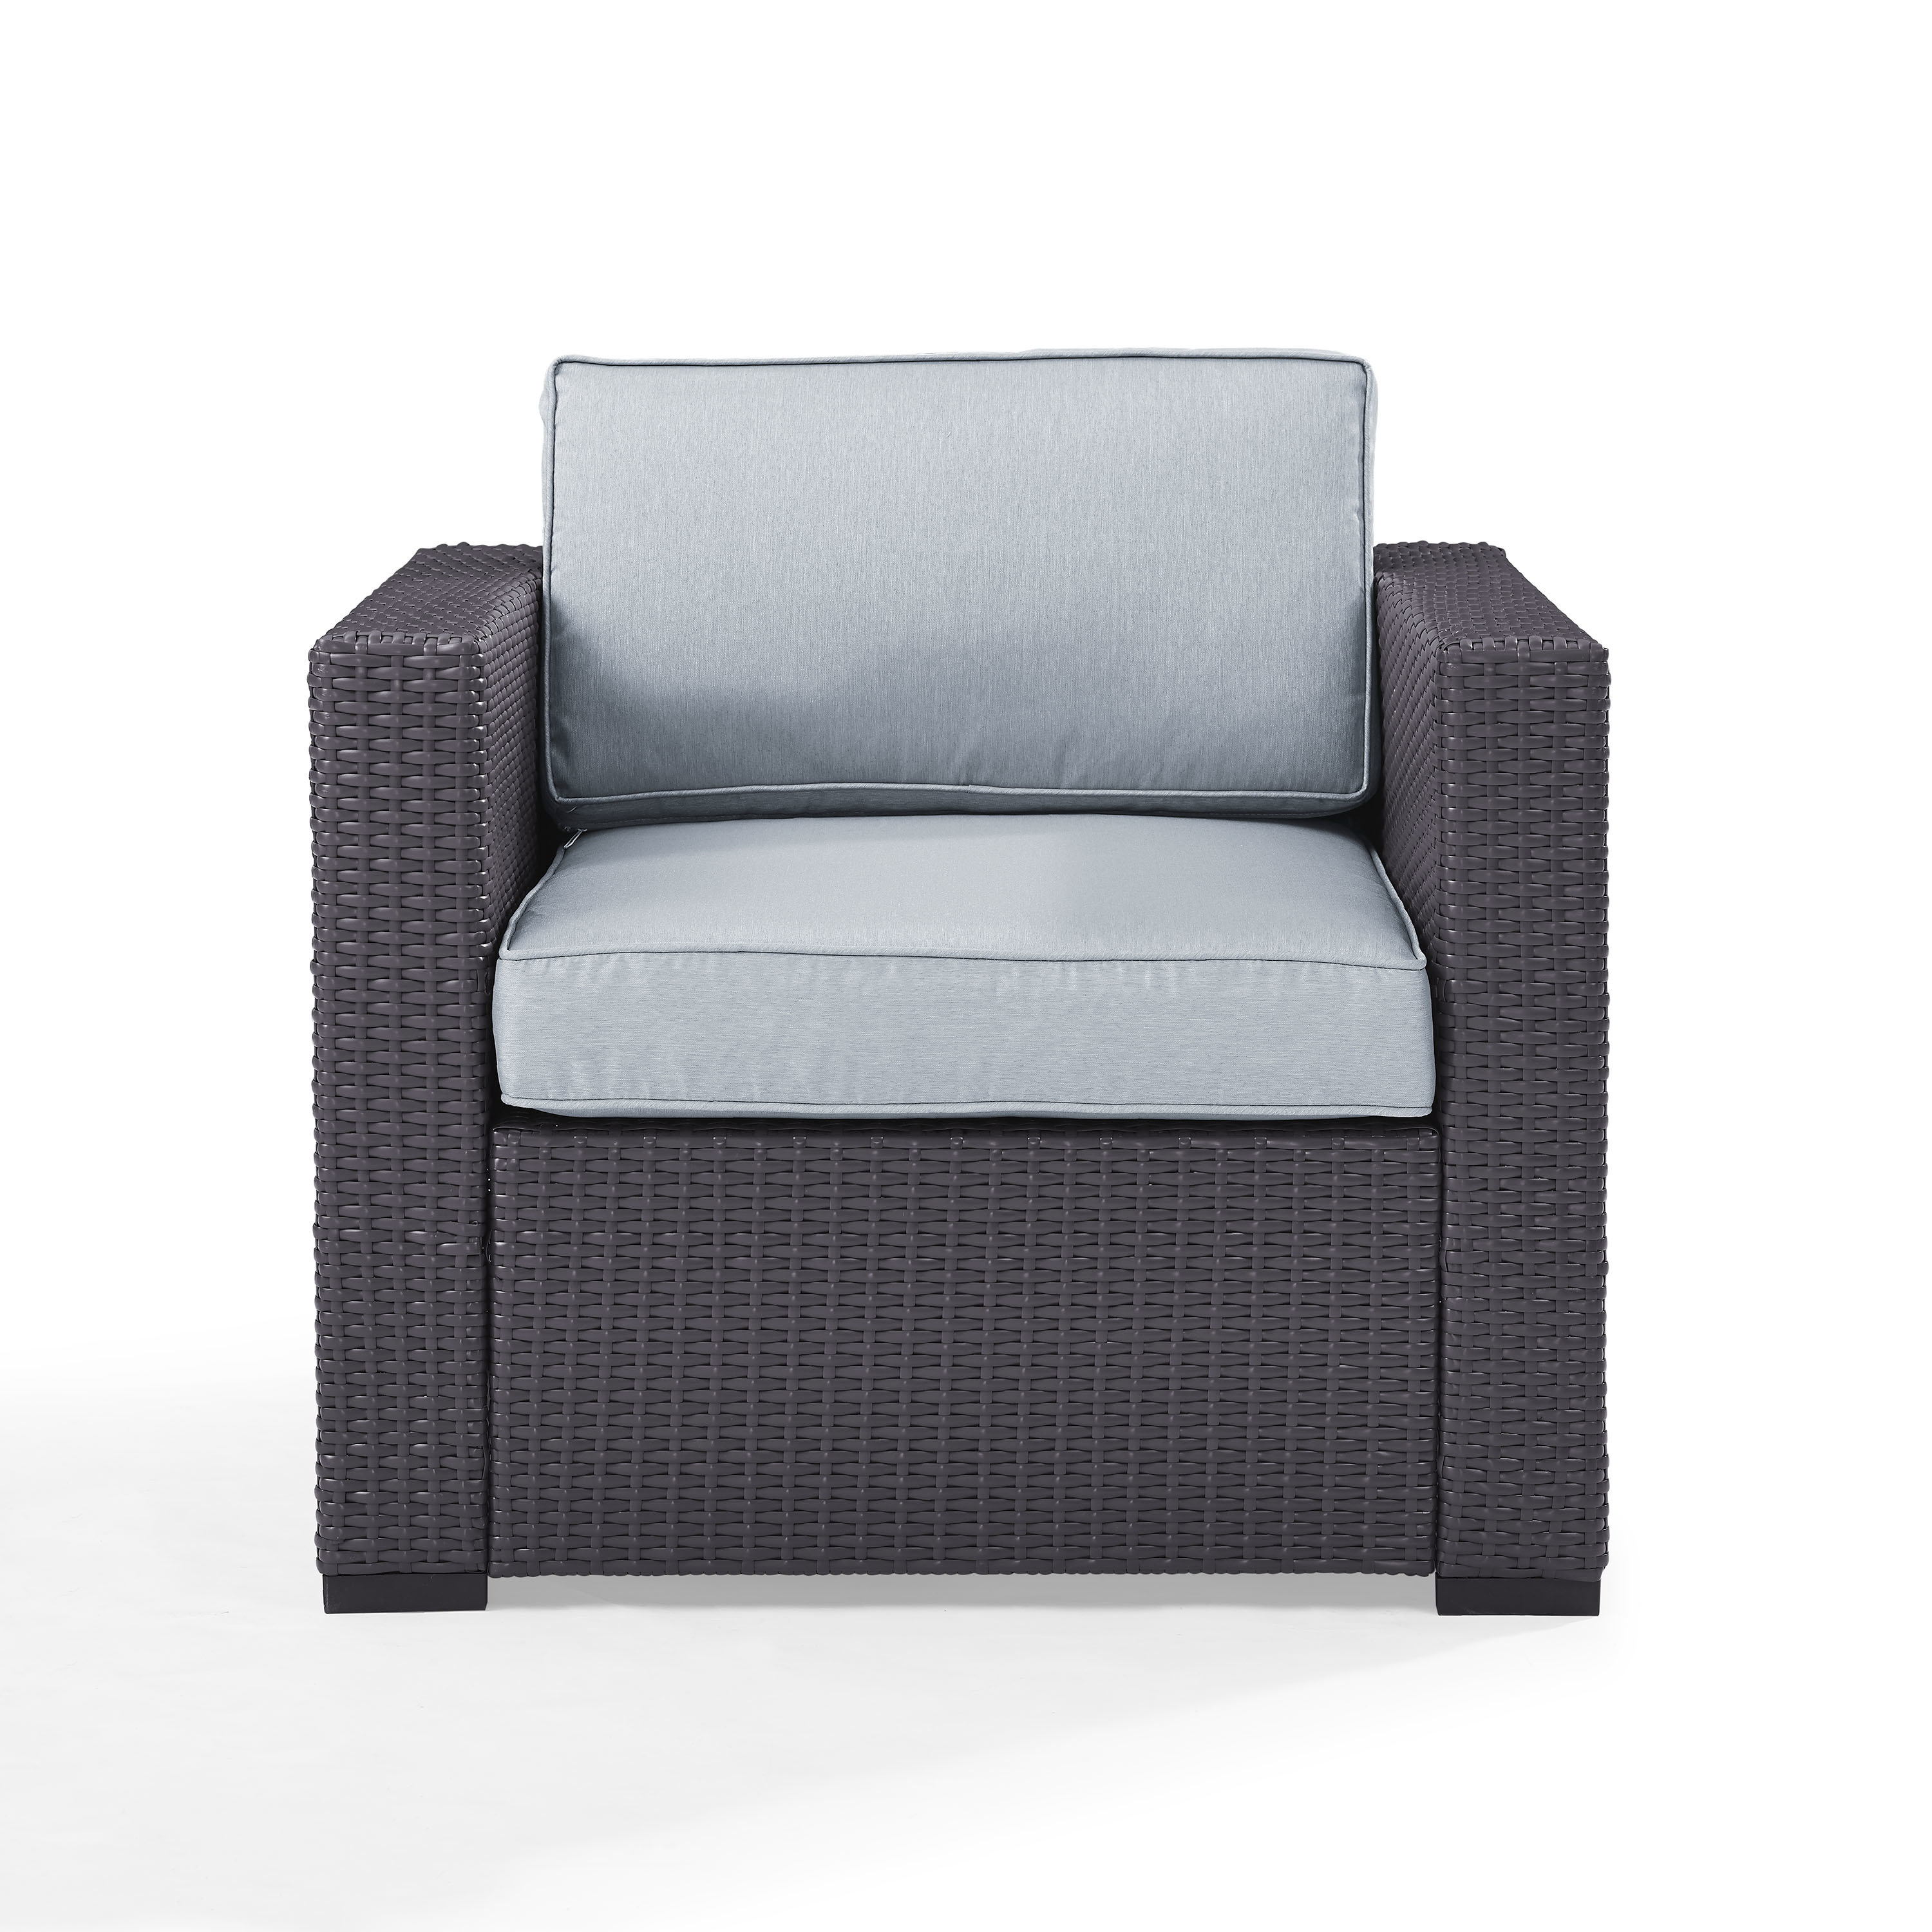 2019 Seaton Patio Chair With Cushions With Regard To Keiran Patio Daybeds With Cushions (View 2 of 20)